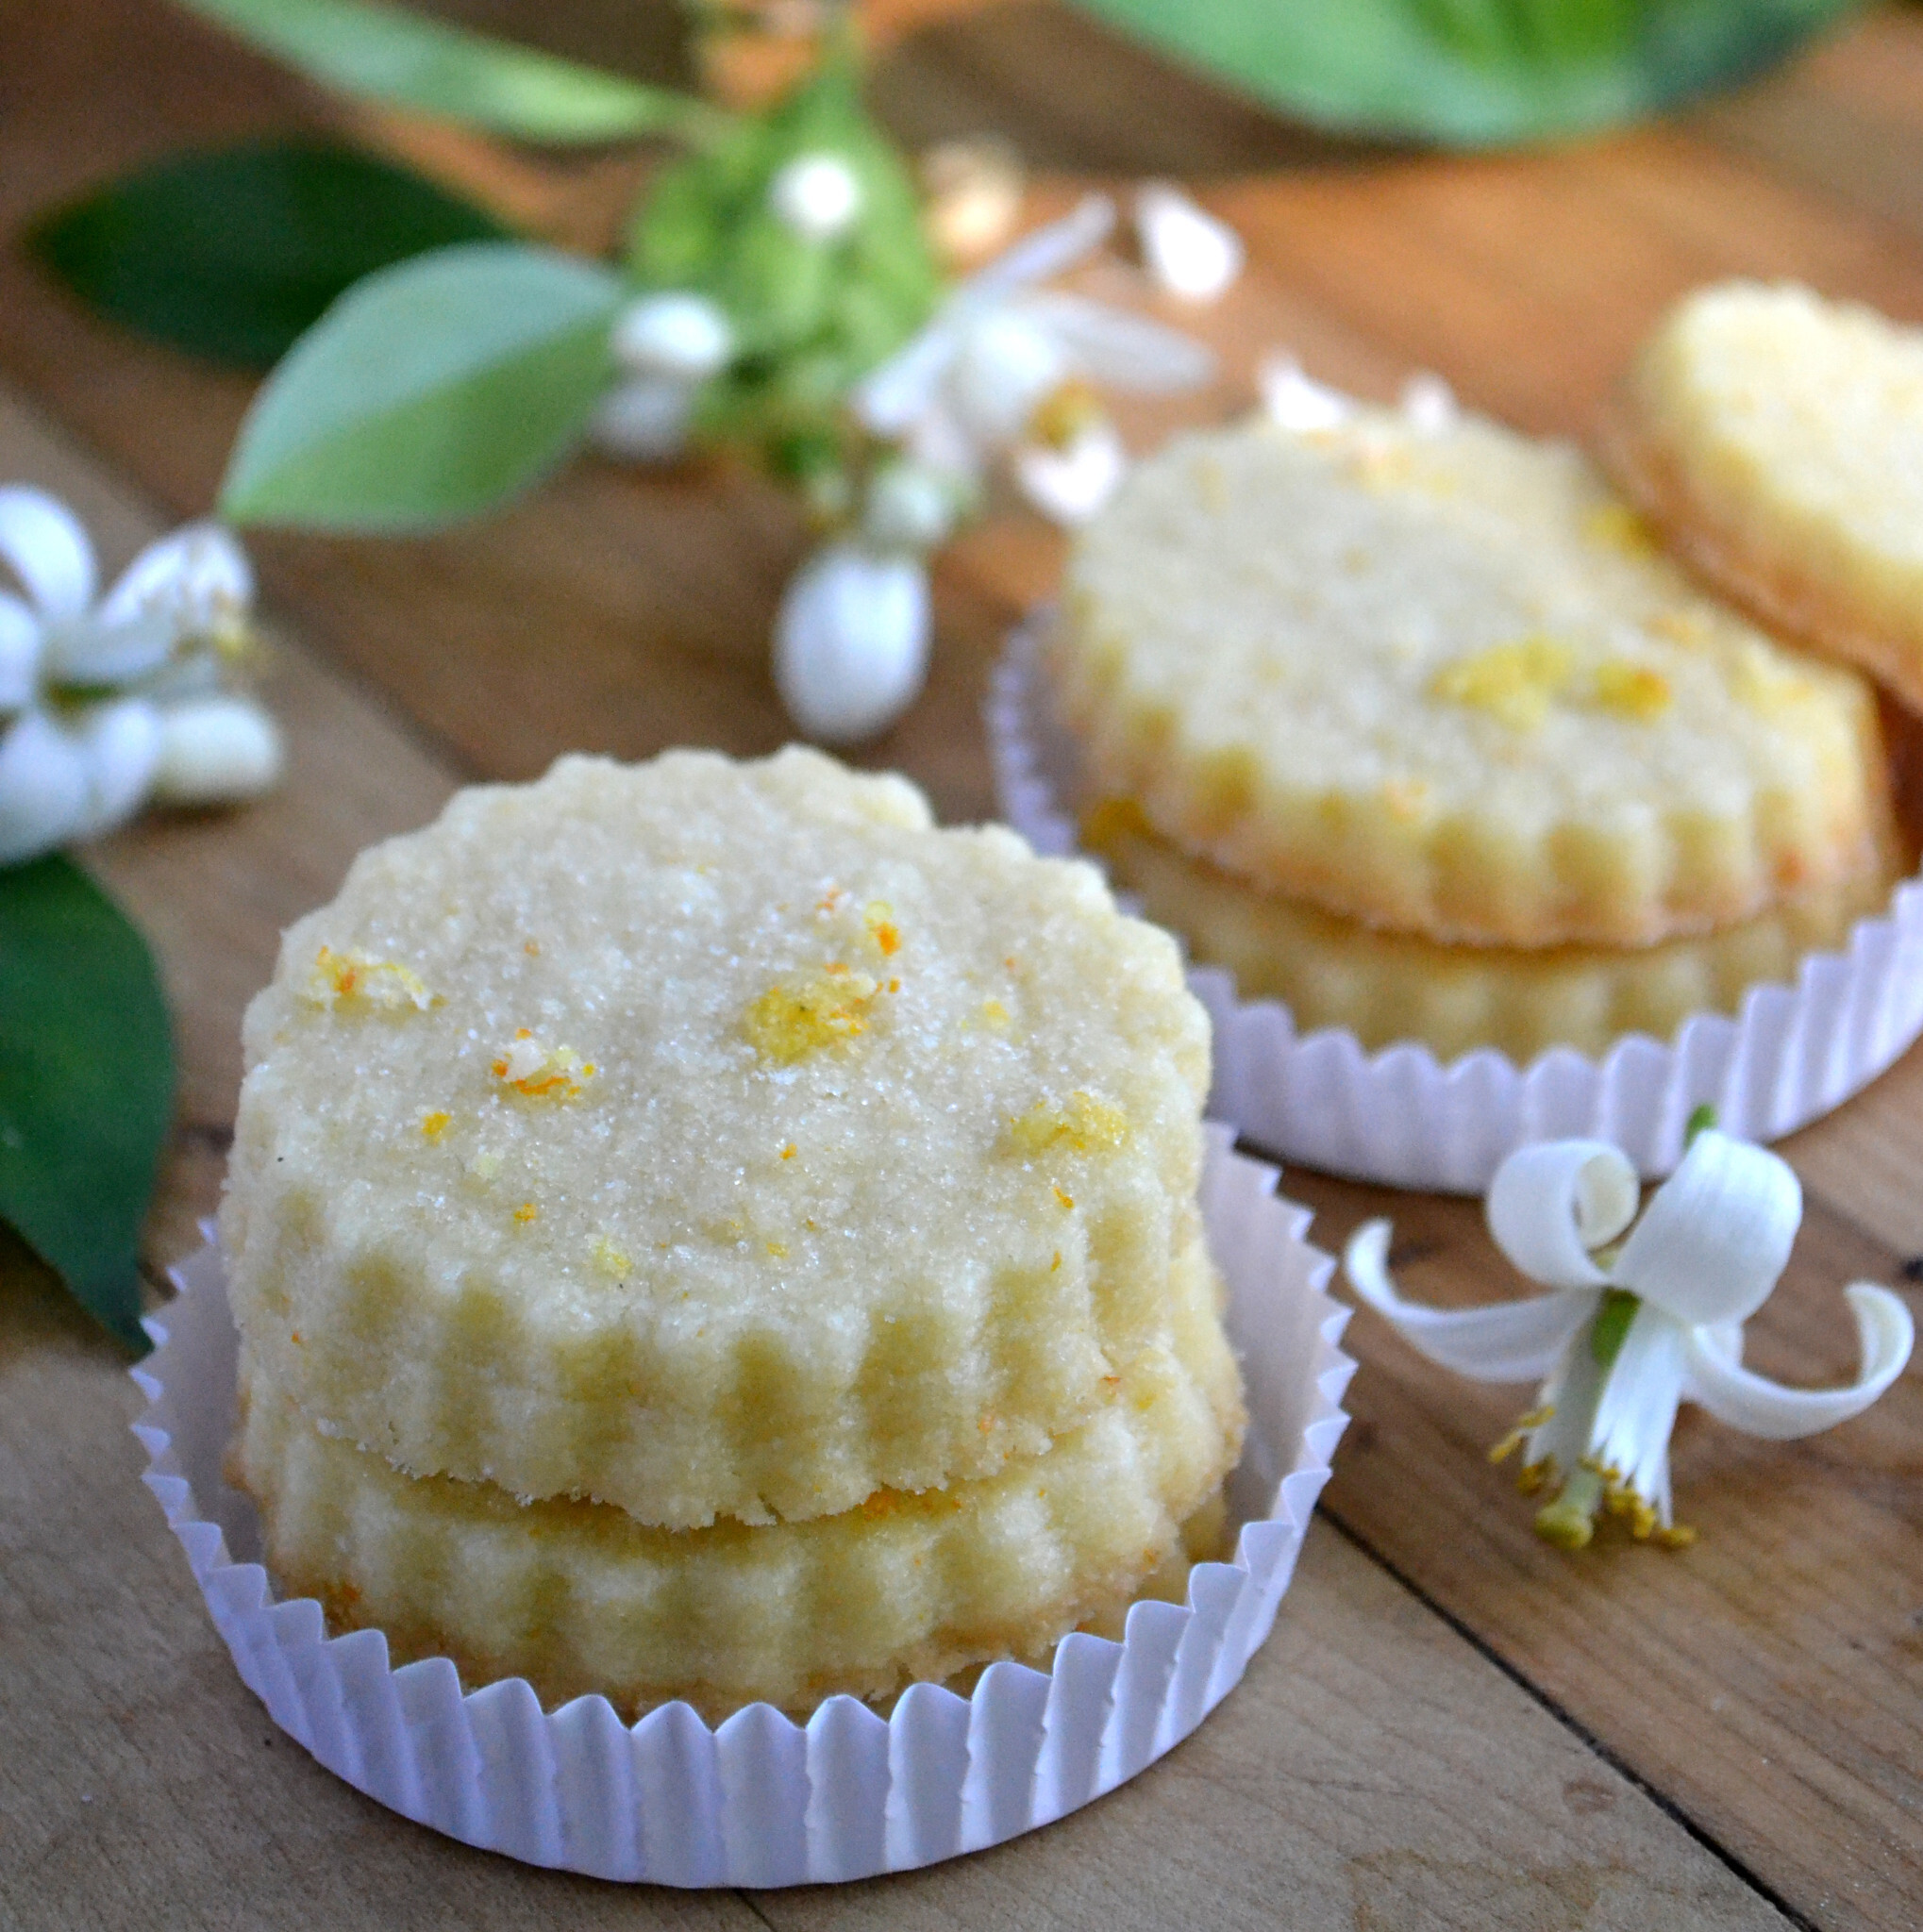 Orange Blossom Shortbread